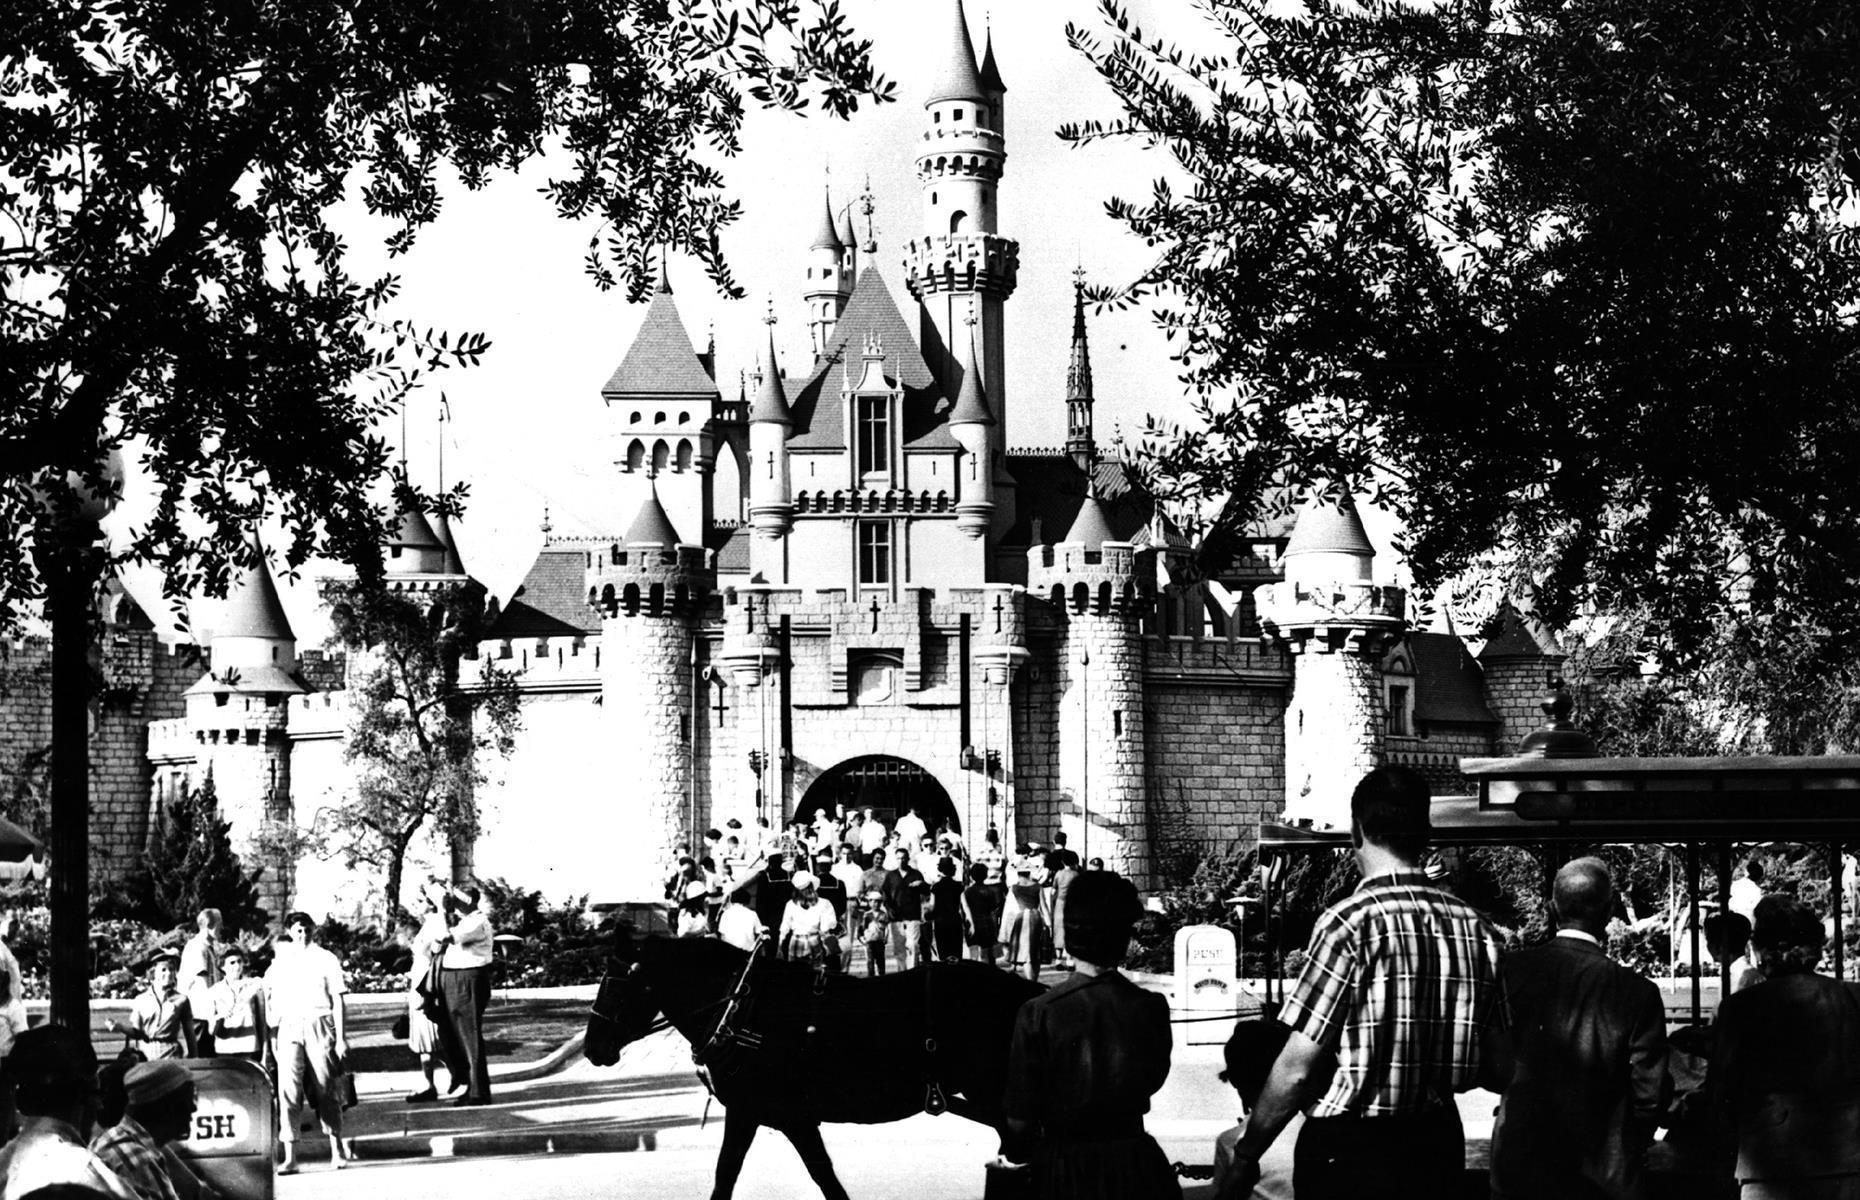 Slide 41 of 51: Disneyland (renamed Disneyland Park in the 1990s) opened on 17 July 1955 and the Sleeping Beauty Castle, which is modeled on Neuschwanstein Castle in Bavaria, Germany, is its most recognizable attraction. It's been popular since the get-go, receiving 28,000 people on its opening day – some were so desperate to get in that they jumped the fence. This picture shows its popularity continued wellinto the 1960s, as tourists surround the fairy-tale fortress, and it's no different today in normal circumstances (currently closed due to COVID-19). See more historic pictures of Disney's parks here.